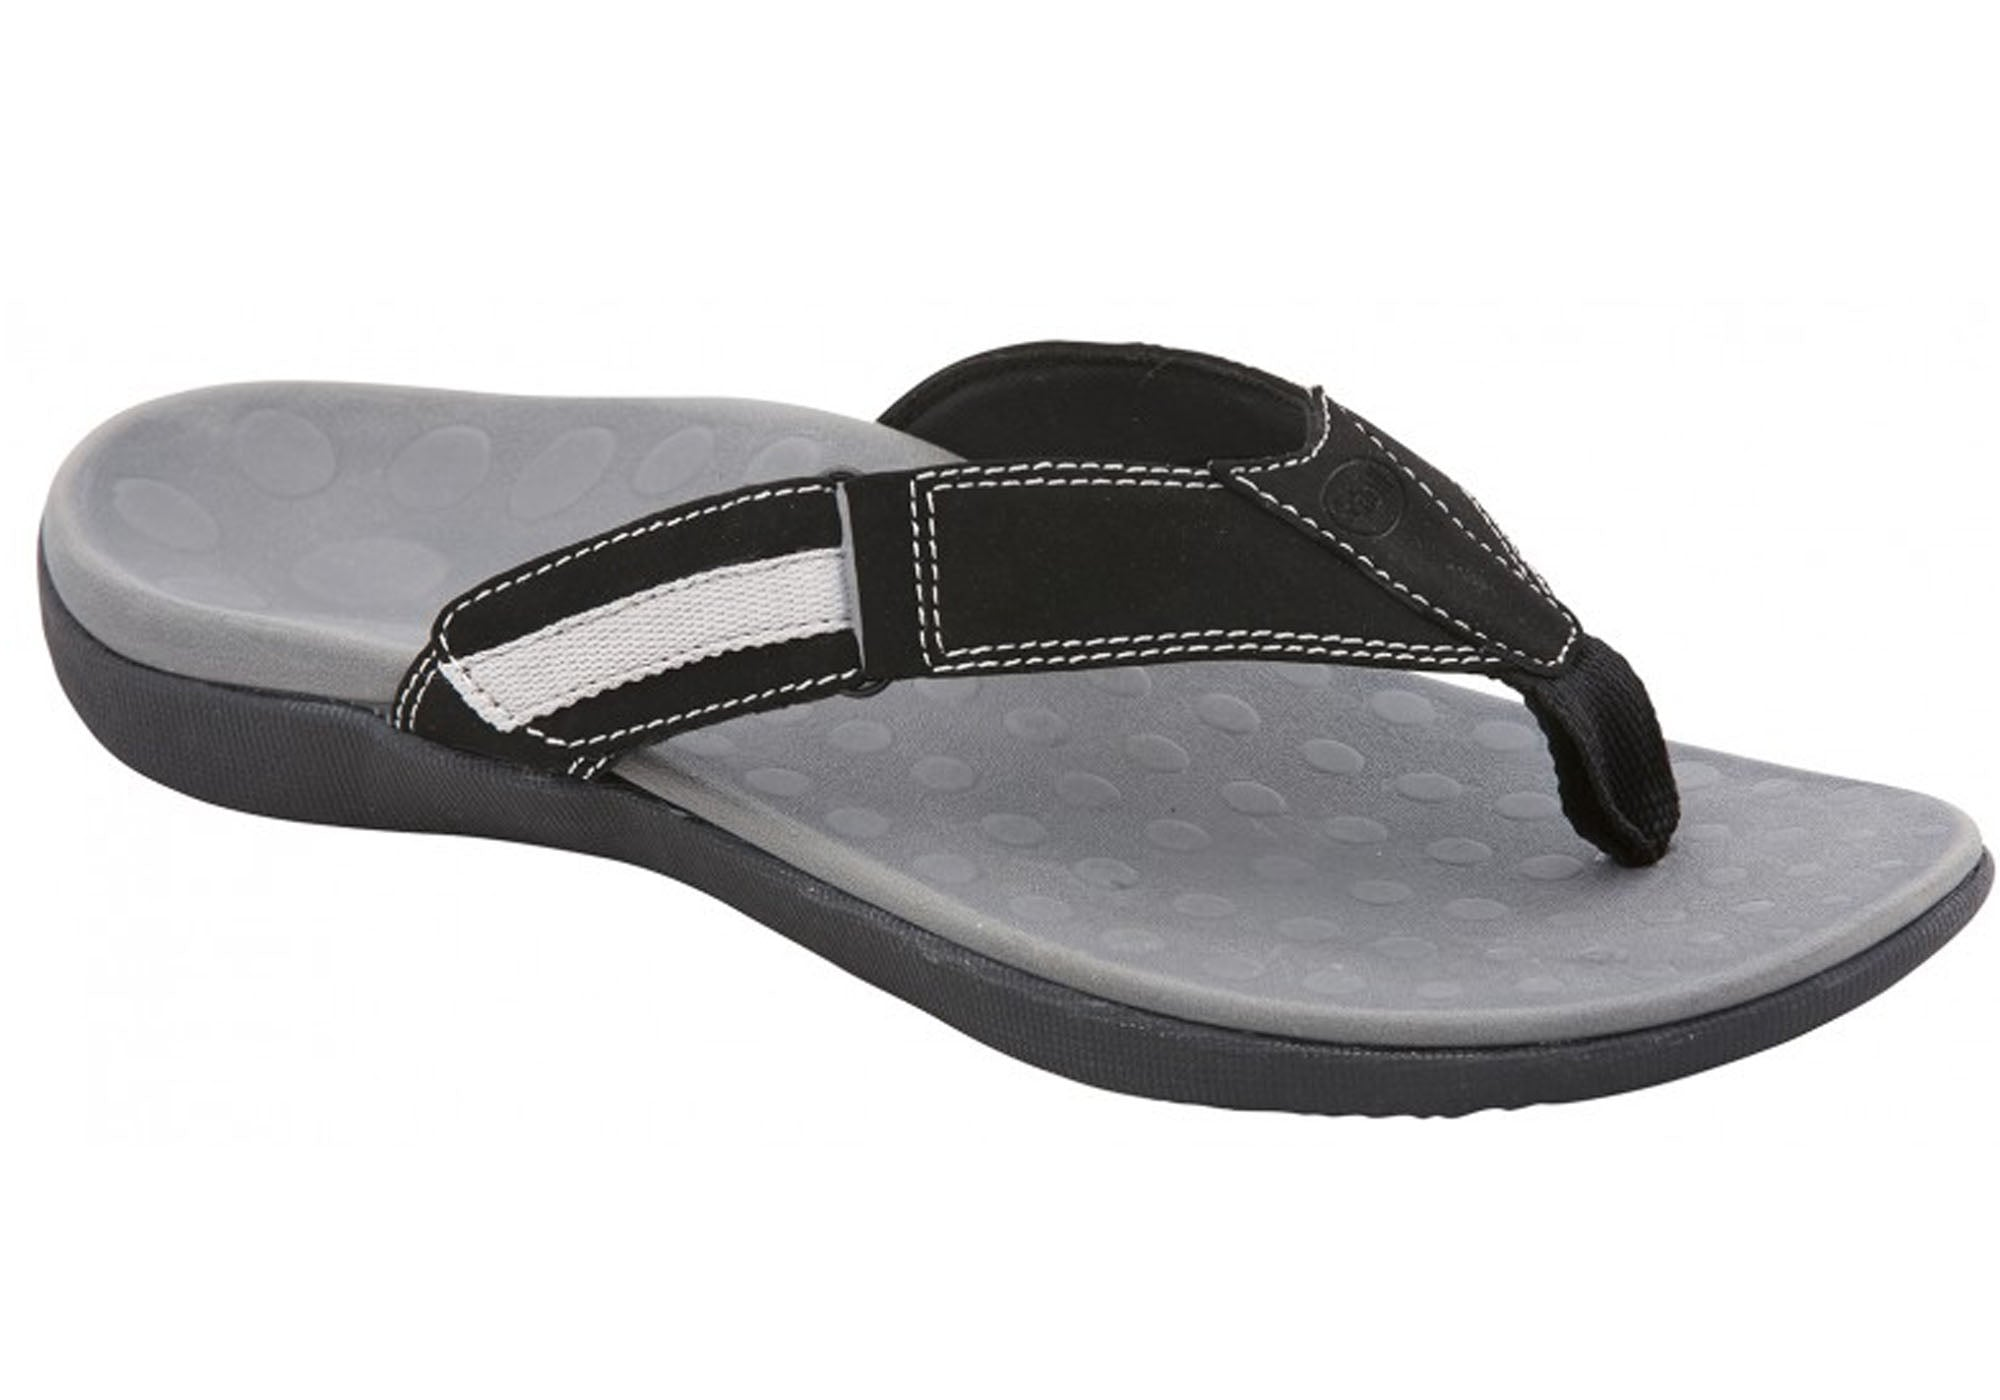 96e75be595f Scholl Orthaheel Ryder II Mens Comfort Orthotic Thongs With Support ...